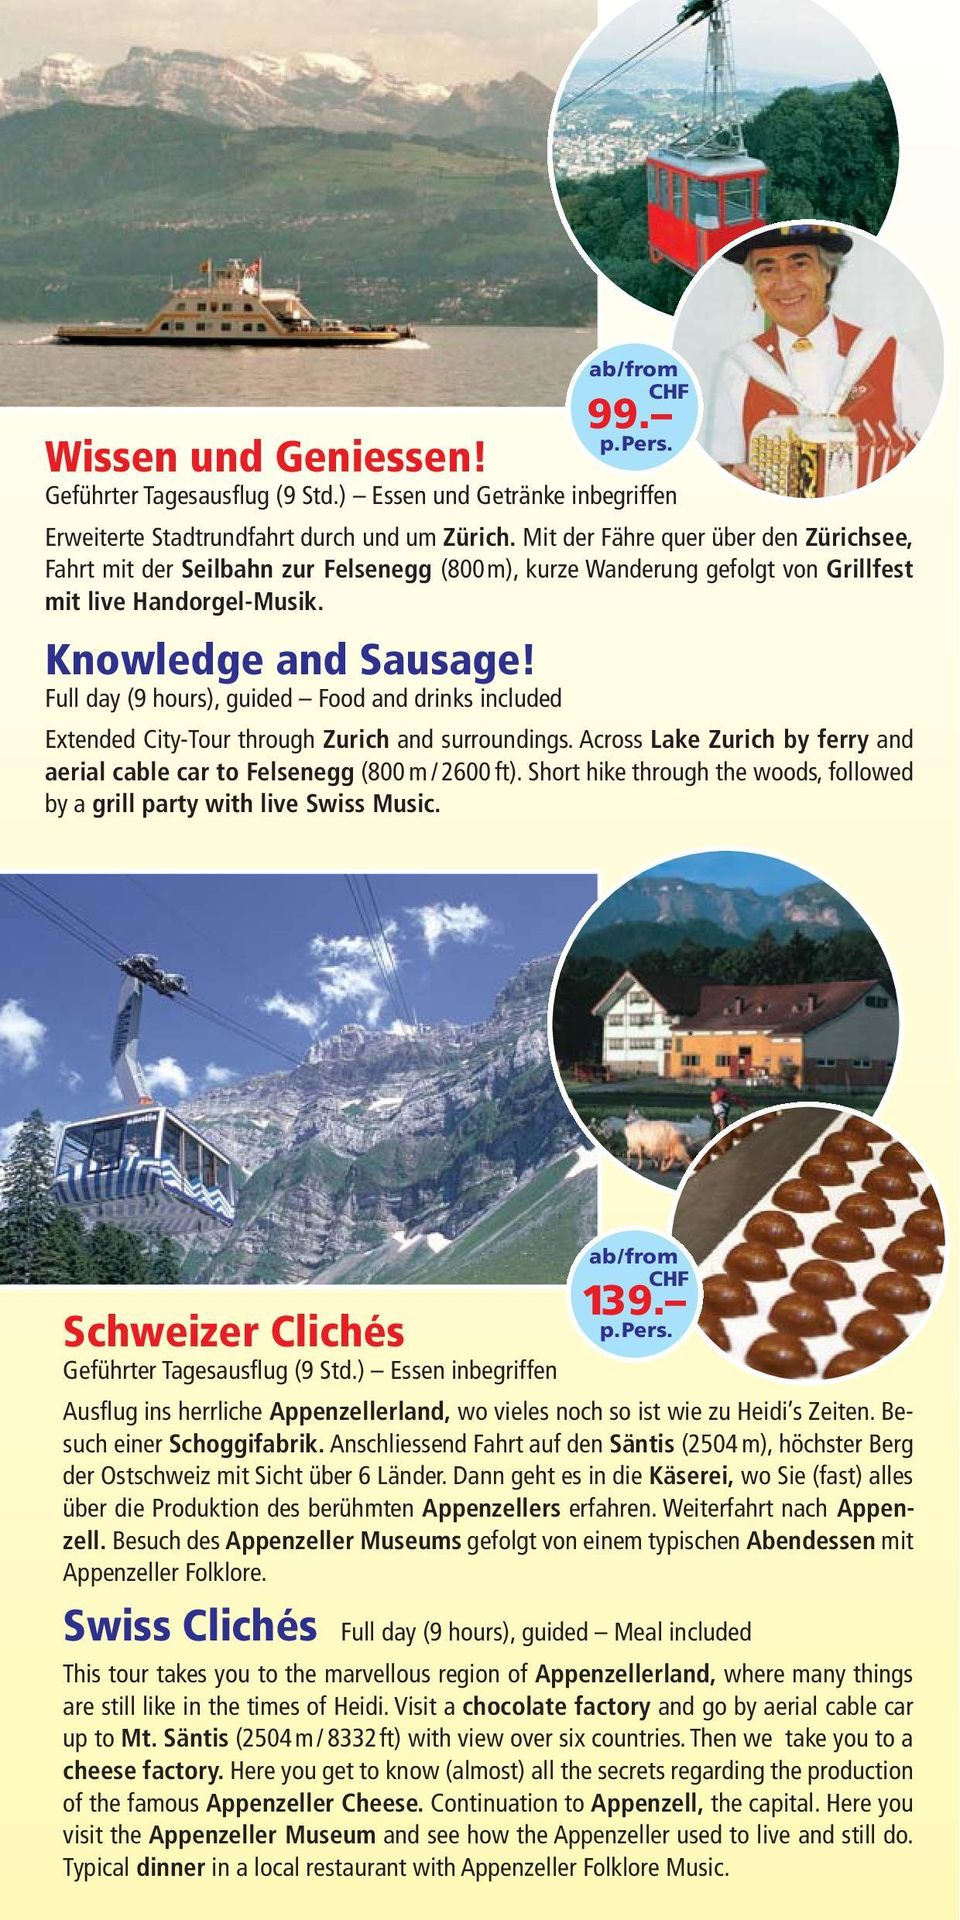 Full day (9 hours), guided Food and drinks included 99. Extended City-Tour through Zurich and surroundings. Across Lake Zurich by ferry and aerial cable car to Felsenegg (800 m / 2600 ft).